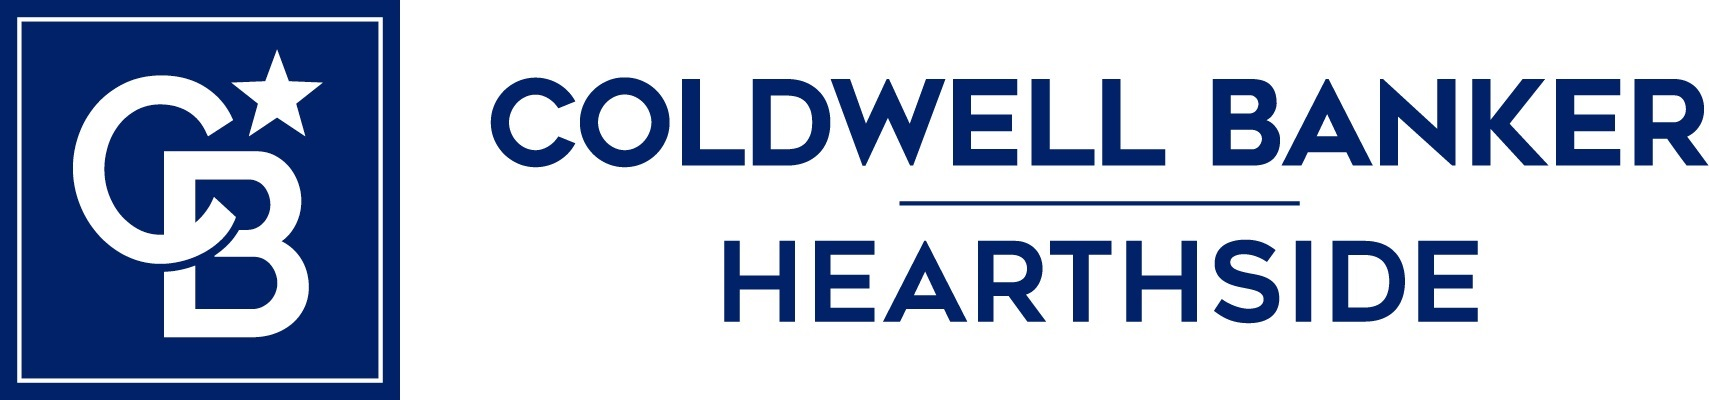 Jim Menditto - Coldwell Banker Hearthside